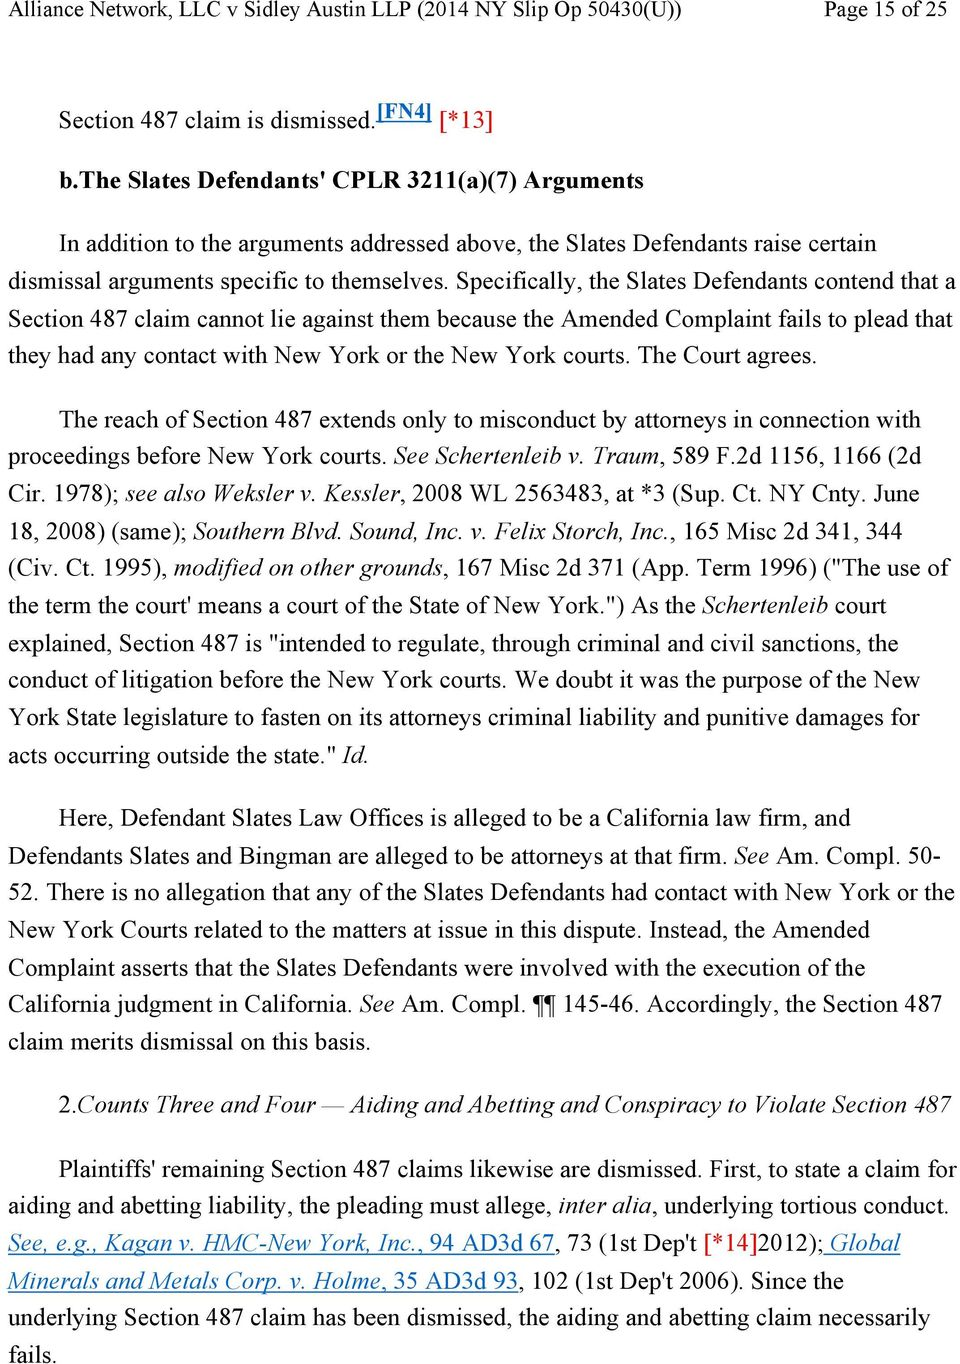 Specifically, the Slates Defendants contend that a Section 487 claim cannot lie against them because the Amended Complaint fails to plead that they had any contact with New York or the New York